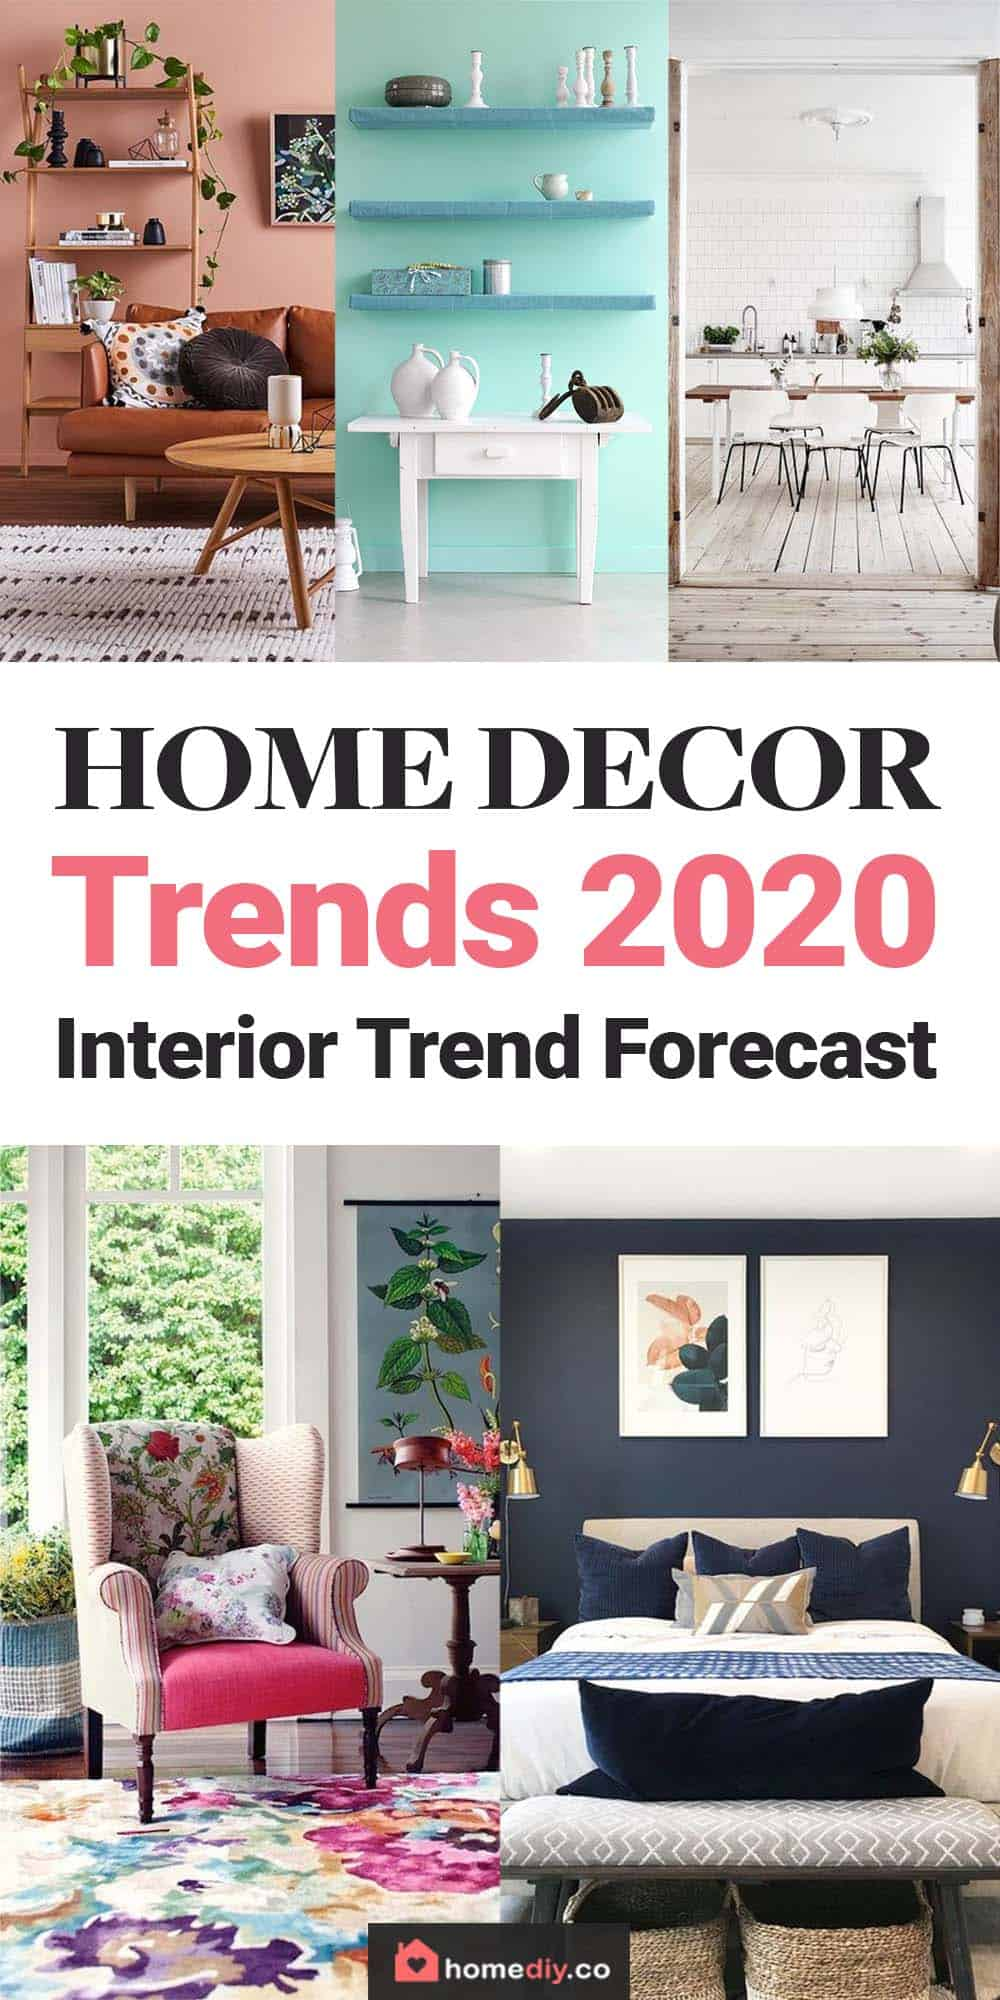 Home Decor Trends 2020 - Interior Trend Forecast